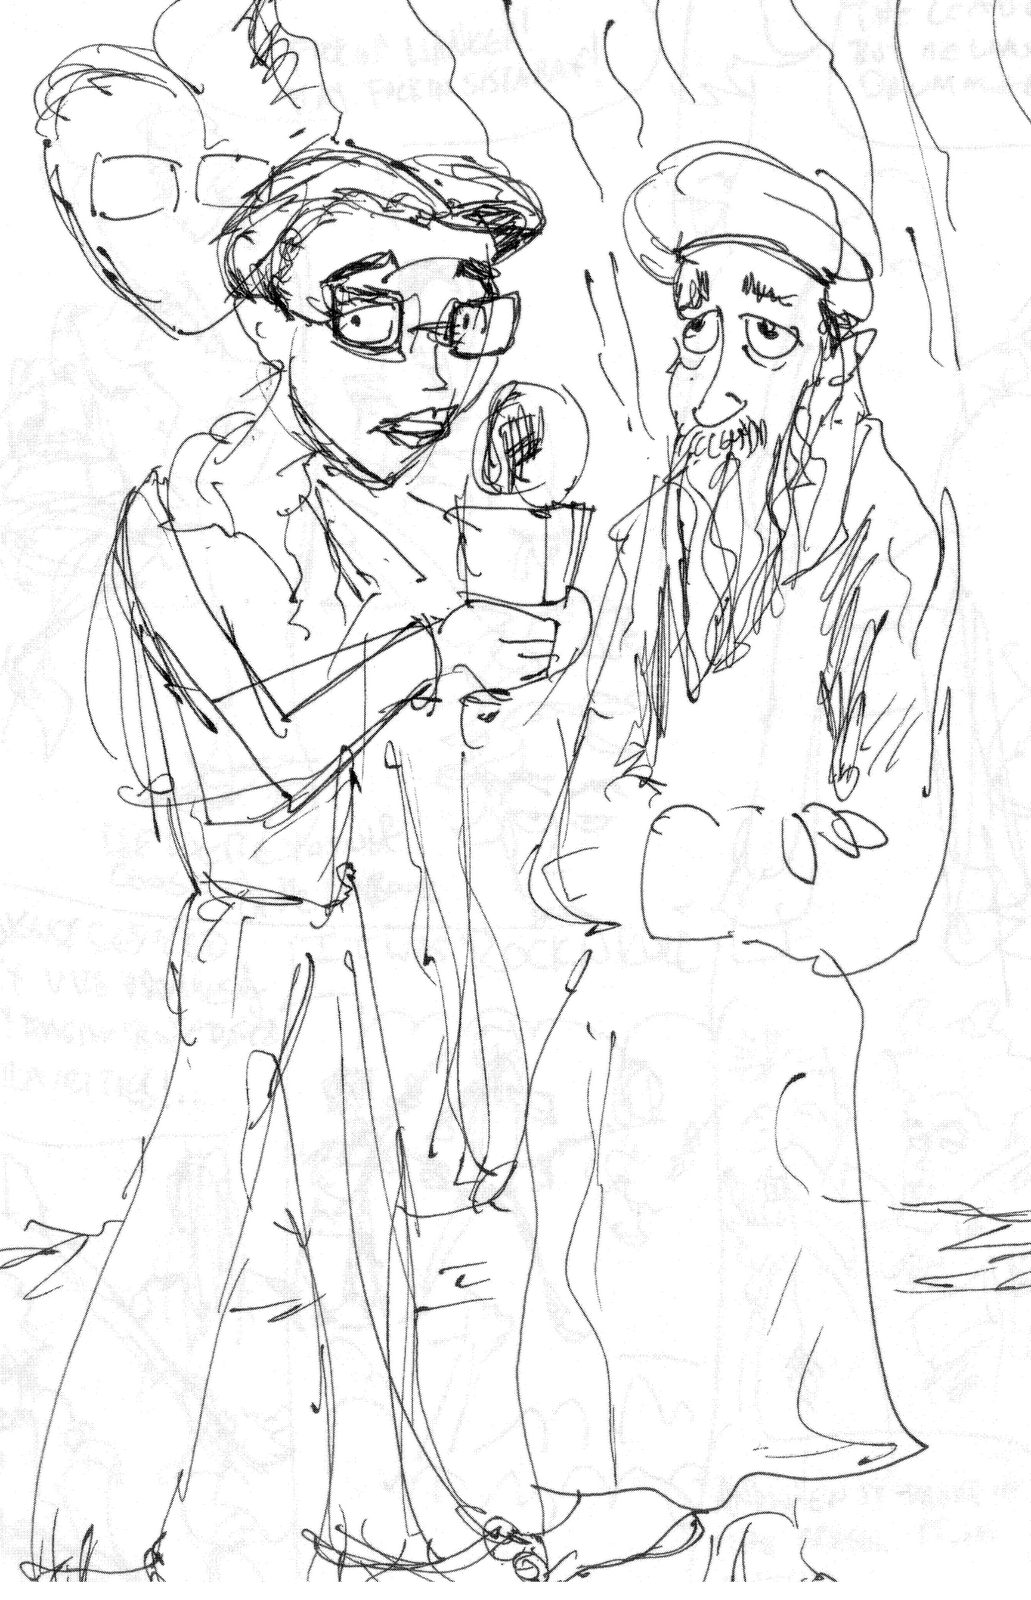 Childrens coloring sheet of saul and ananias - Coloring Pages Of Saul Road